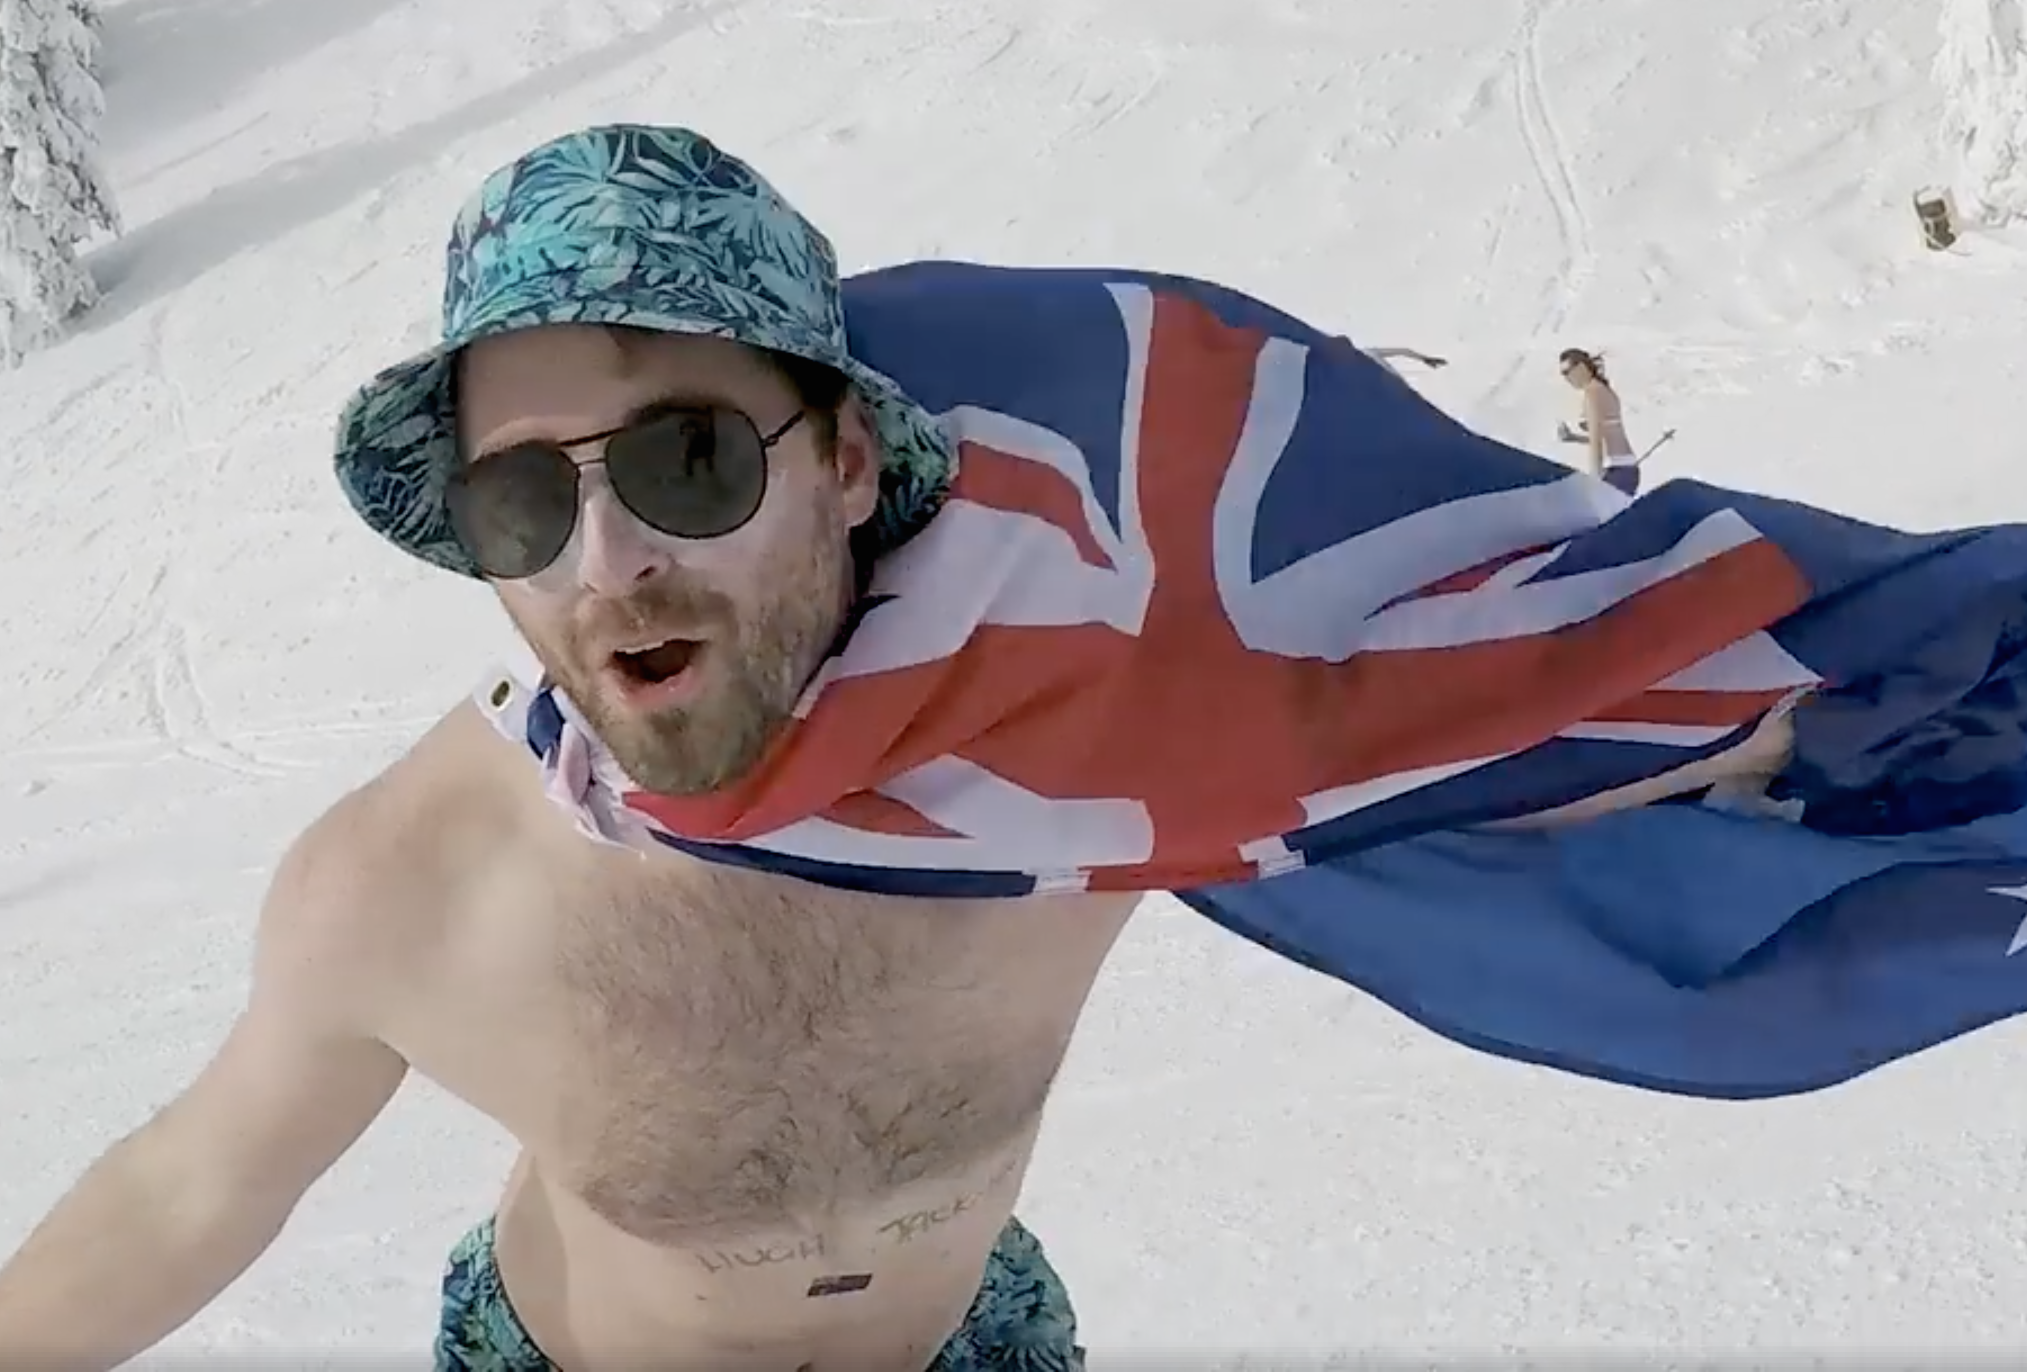 An Australian snowboarder with Australian Flag snowboarding on Australia day.